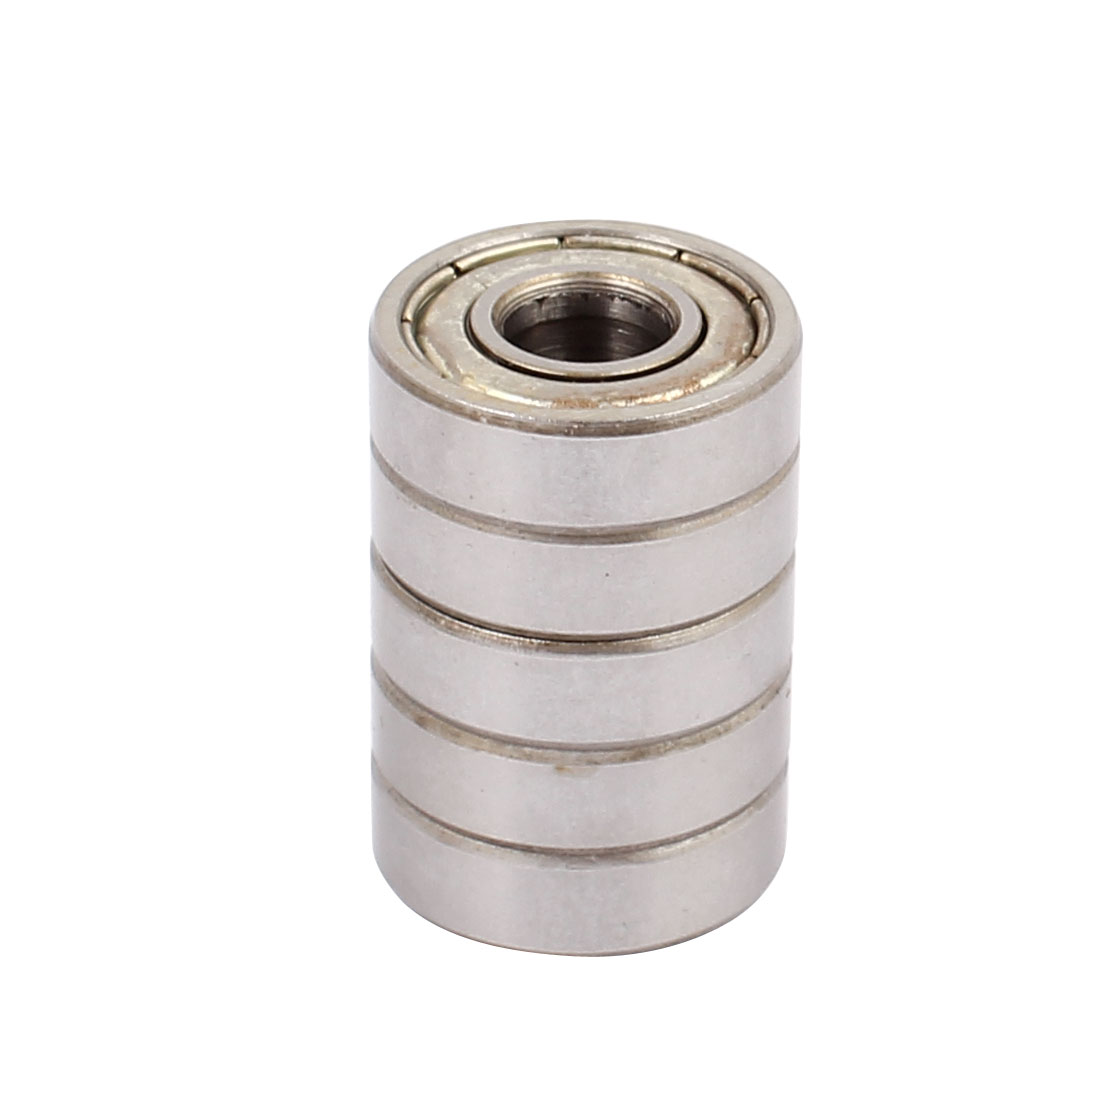 S609Z Double Shielded Deep Groove Ball Bearing Silver Tone 24mmx9mmx7mm 5pcs